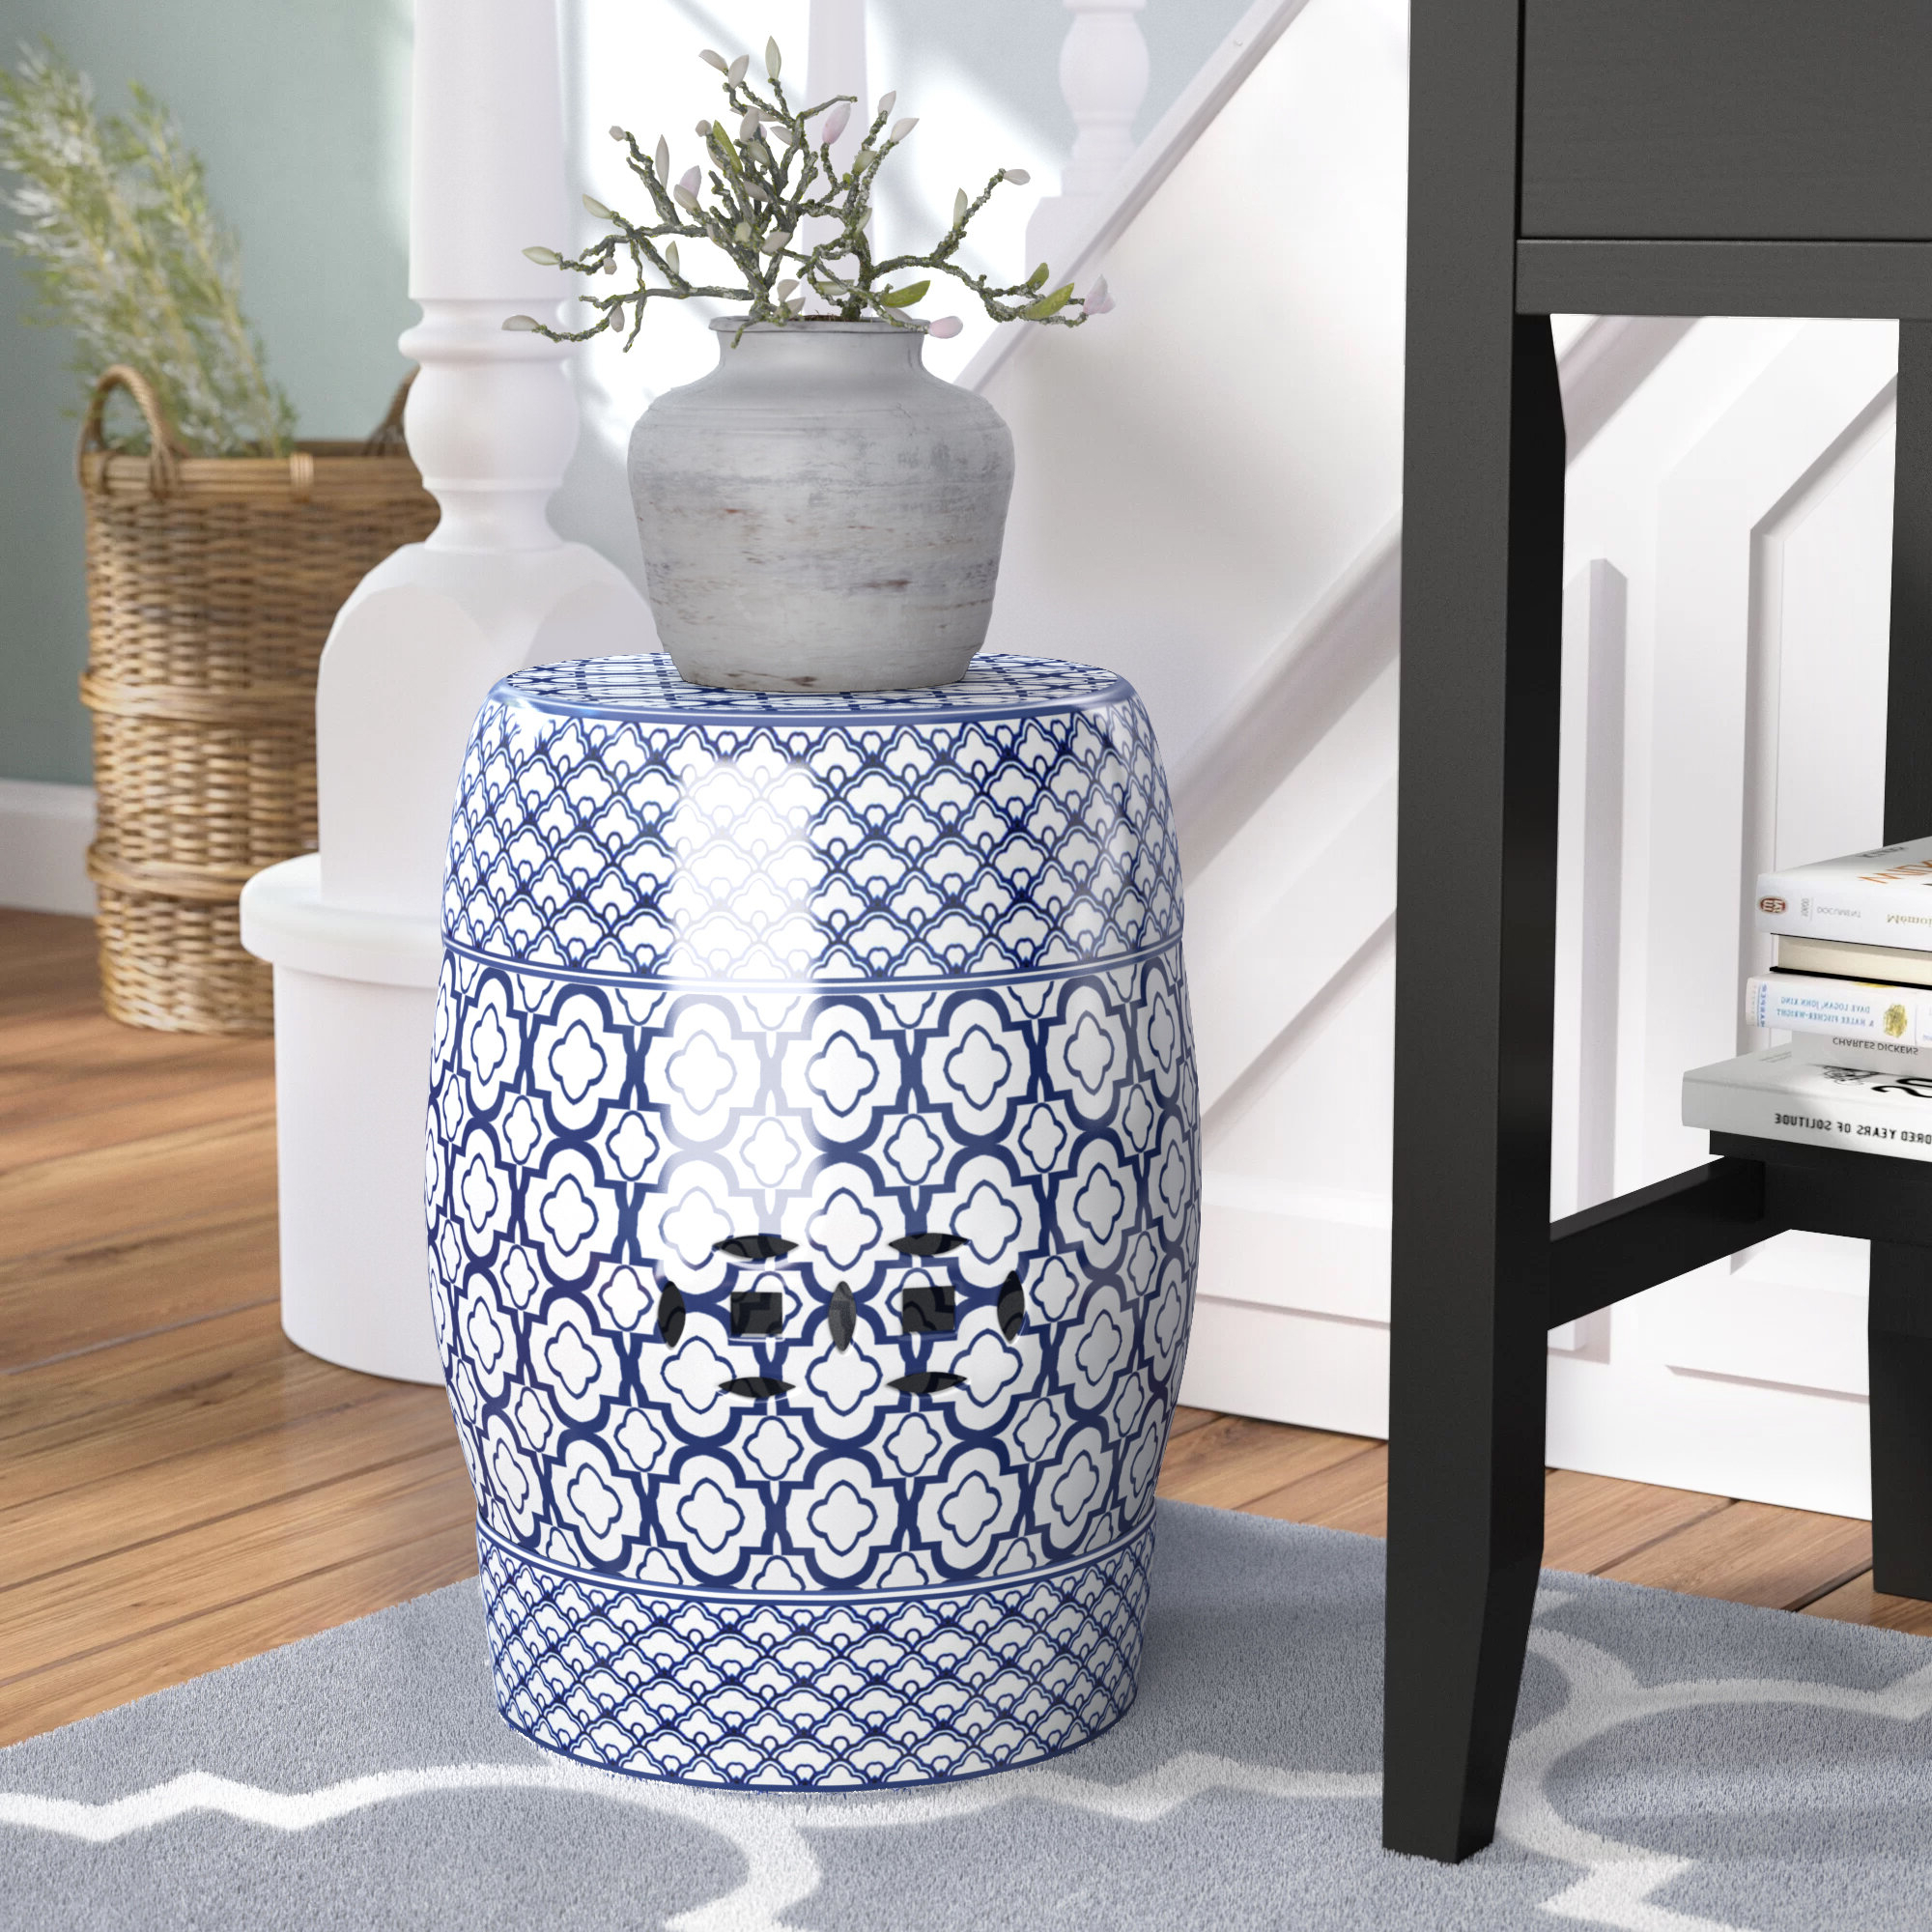 Widely Used Garden Stools (View 15 of 30)